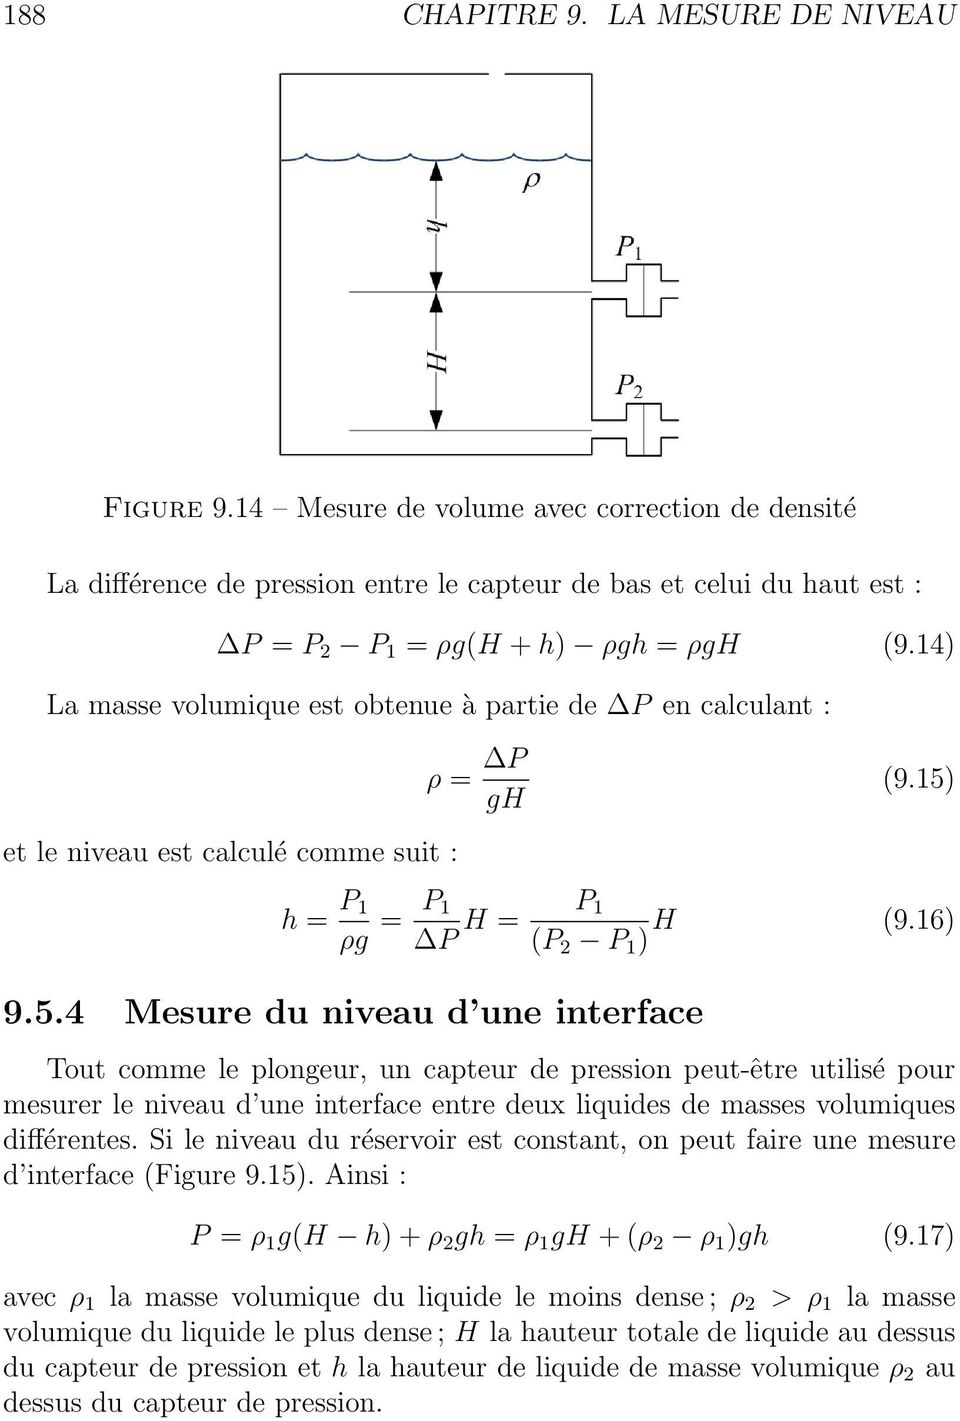 14) La masse volumique est obtenue à partie de P en calculant : ρ = P gh (9.15)